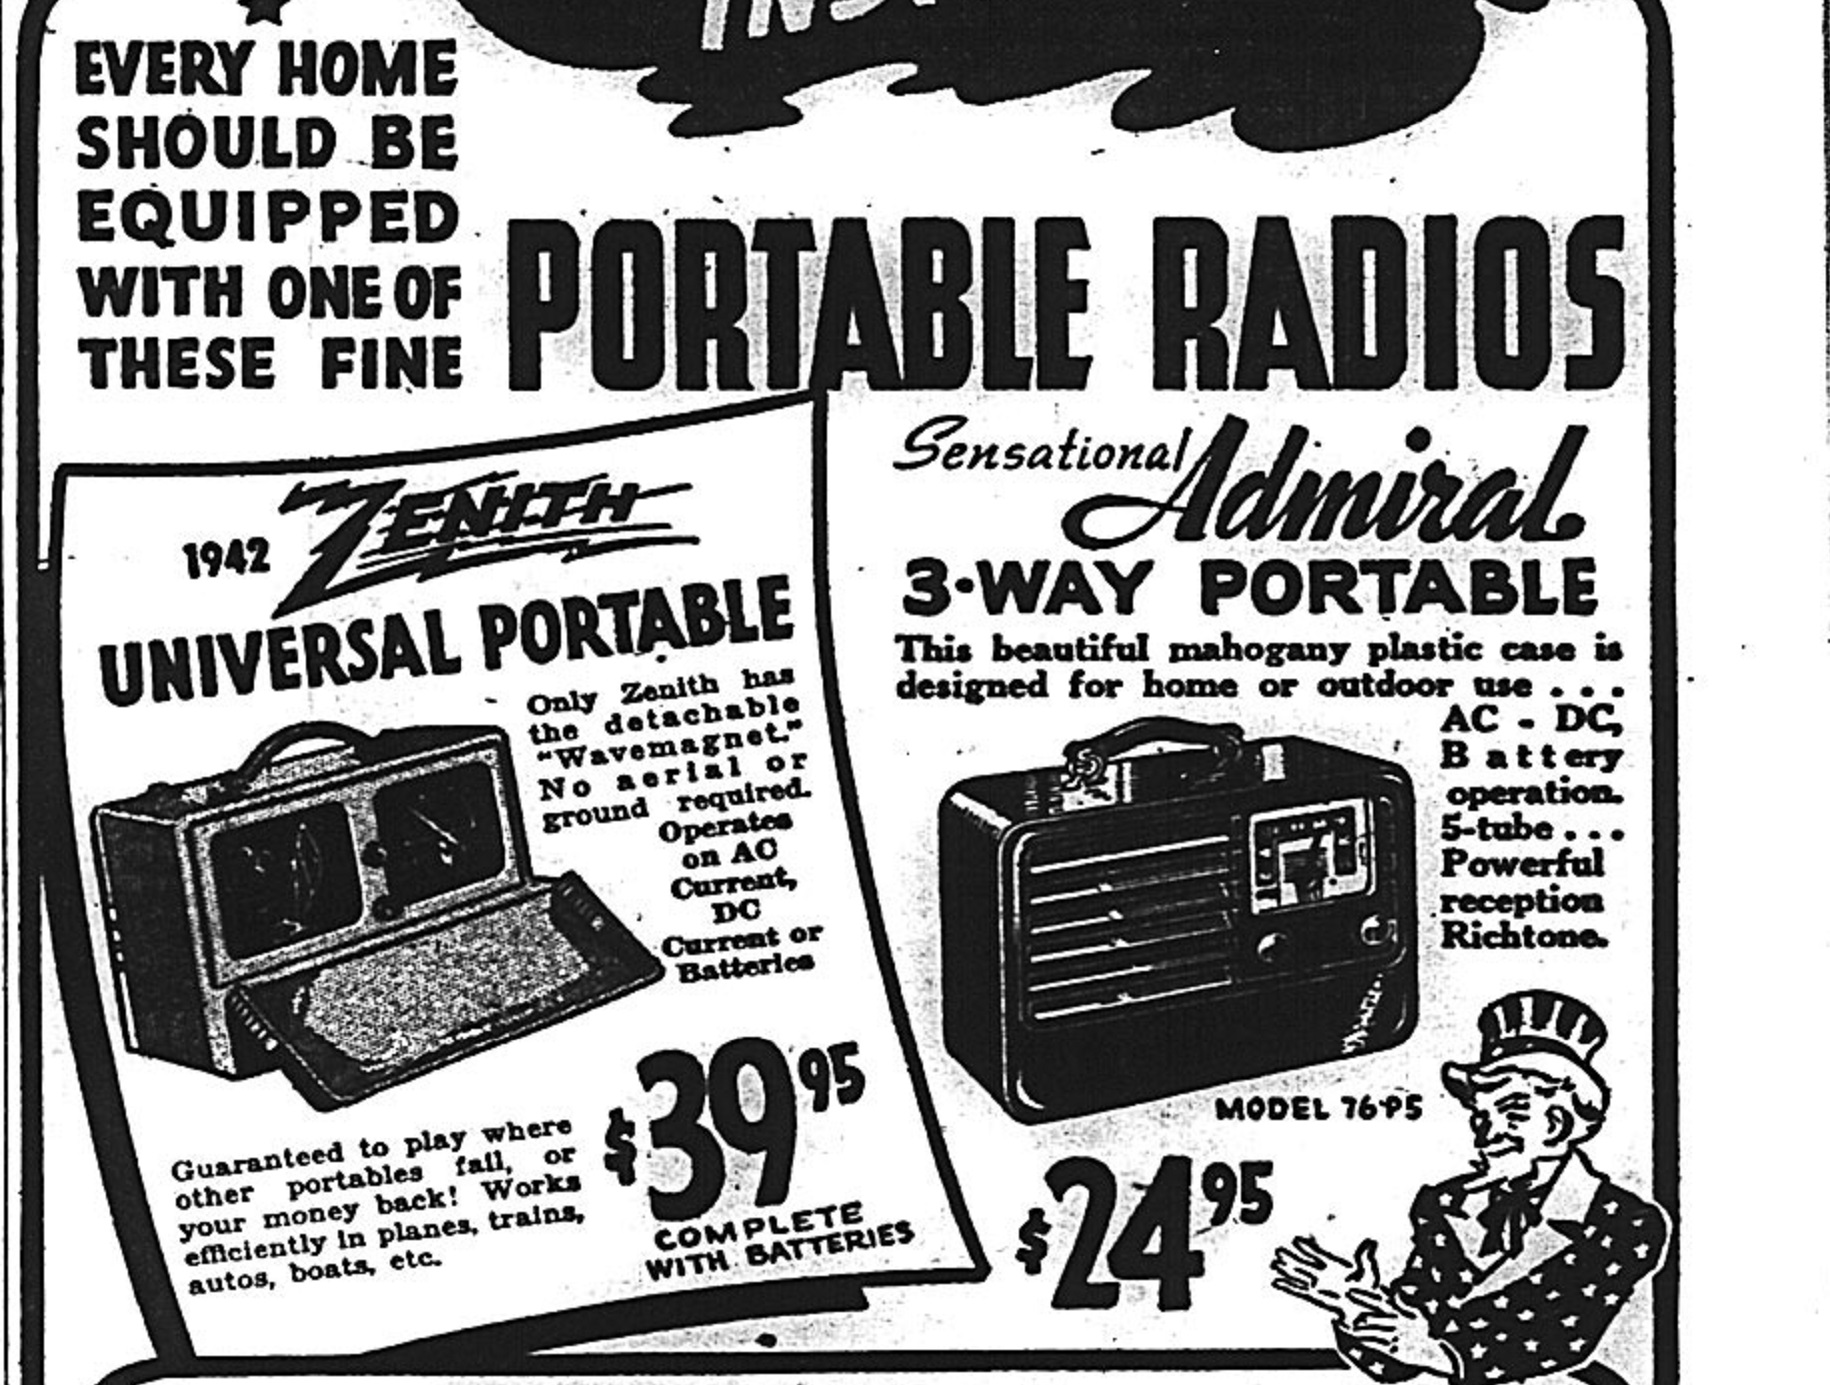 Detroit Jewish News March 27, 1942 issue featuring Boyer's Haunted Shacks advertisements for radios.